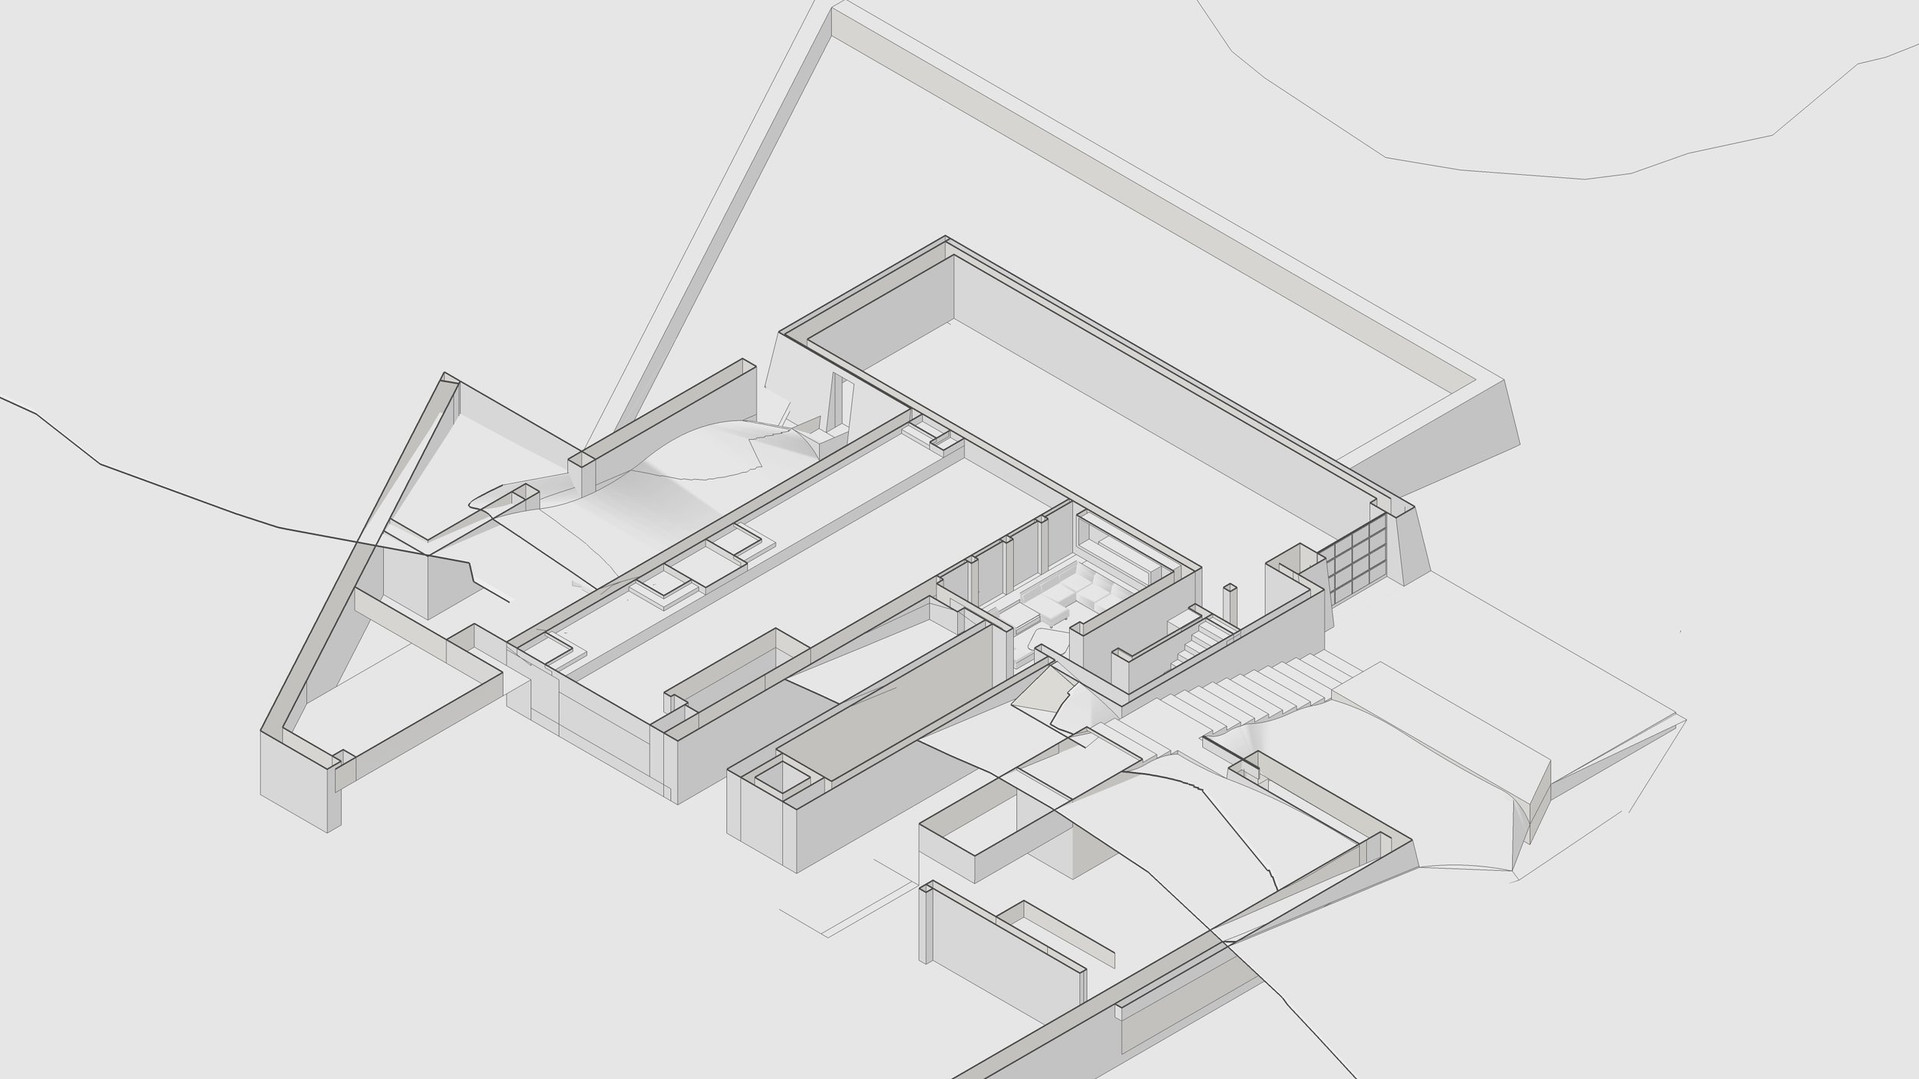 LA CANADA FLINTRIDGE RESIDENCE - LOWER FLOOR DIAGRAM